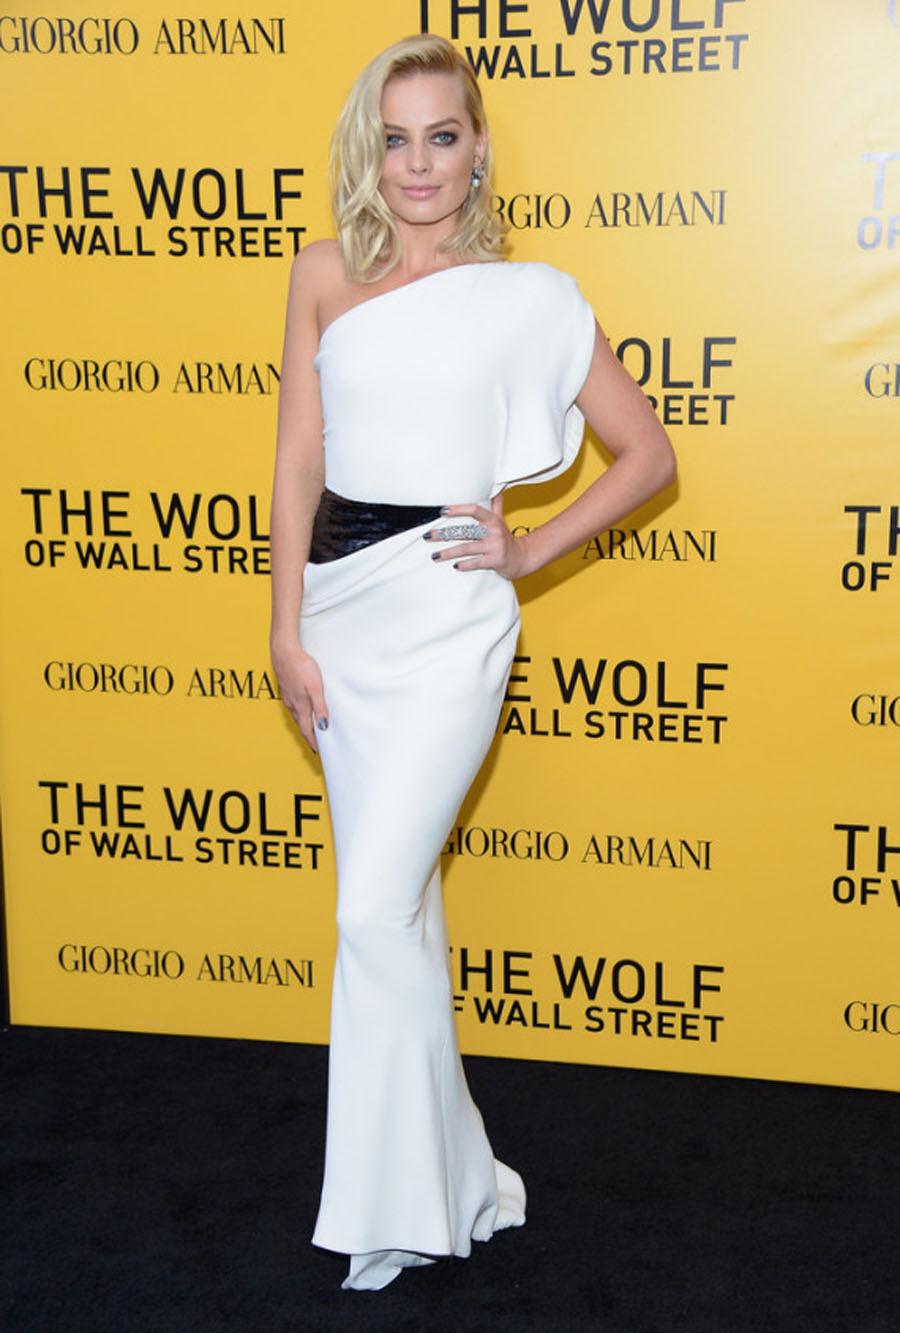 Margot Robbie Shines At 'The Wolf Of Wall Street' Premiere 48943